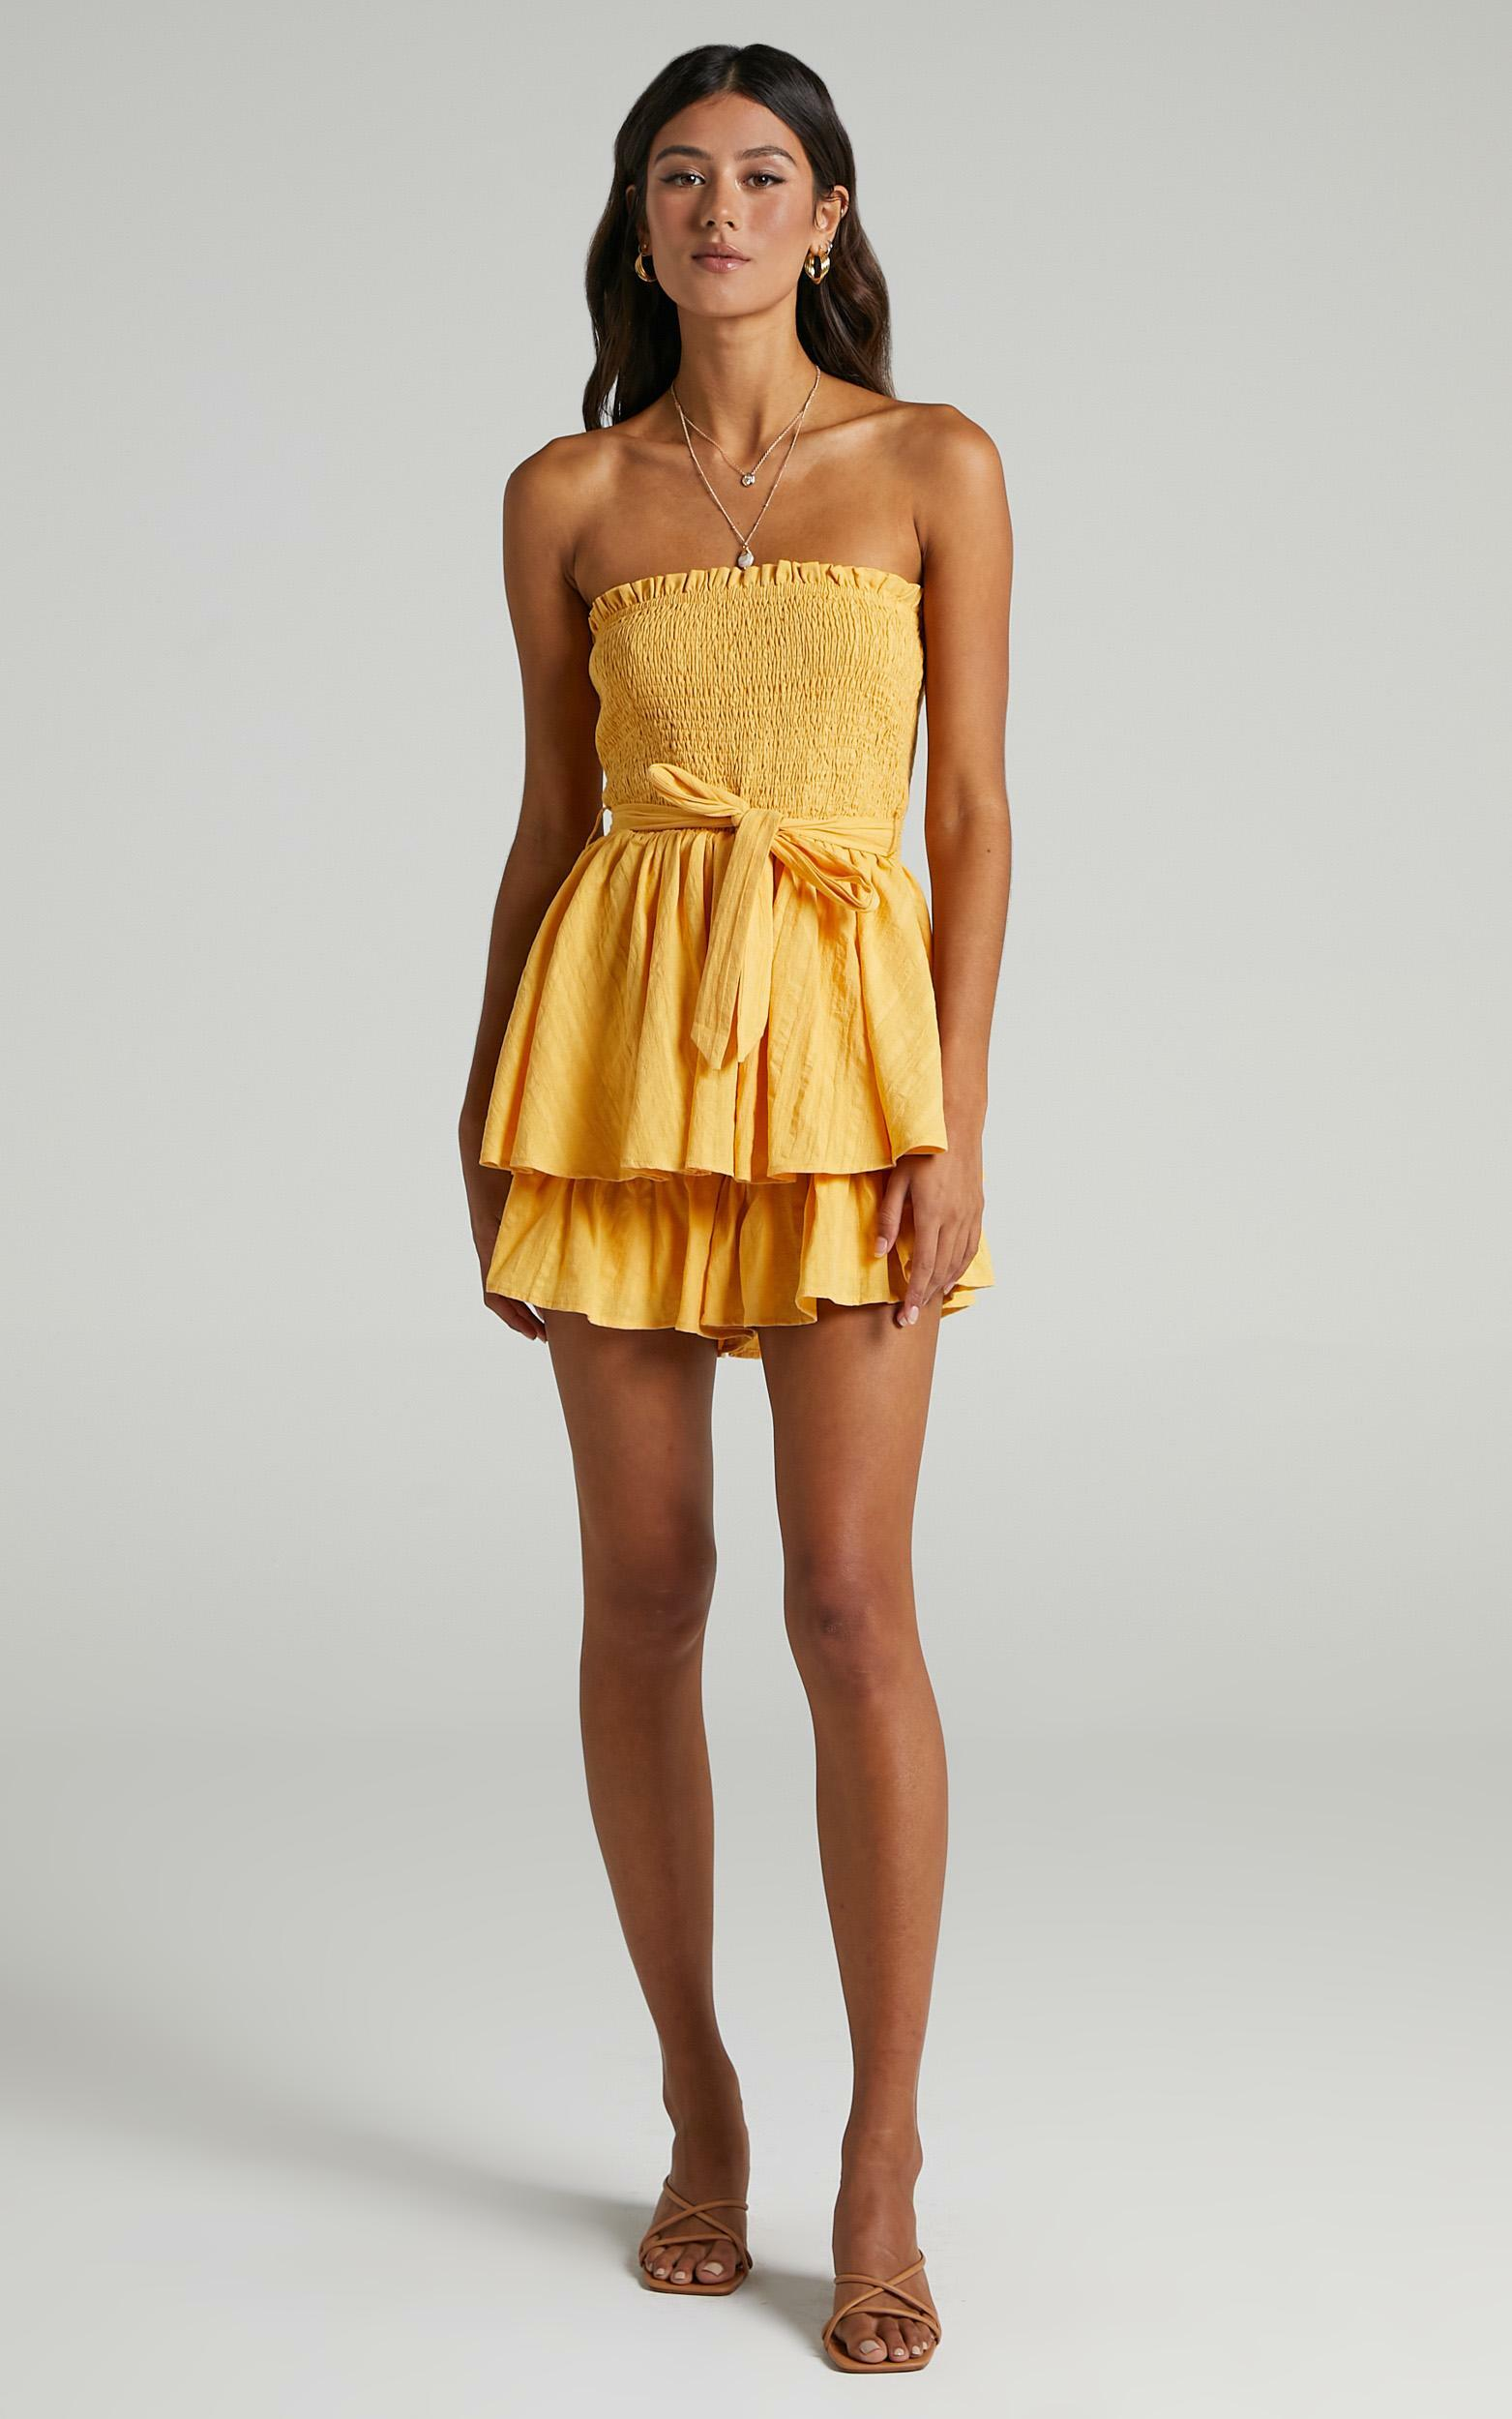 Mutual Love Playsuit in Mustard - 6 (XS), Mustard, hi-res image number null